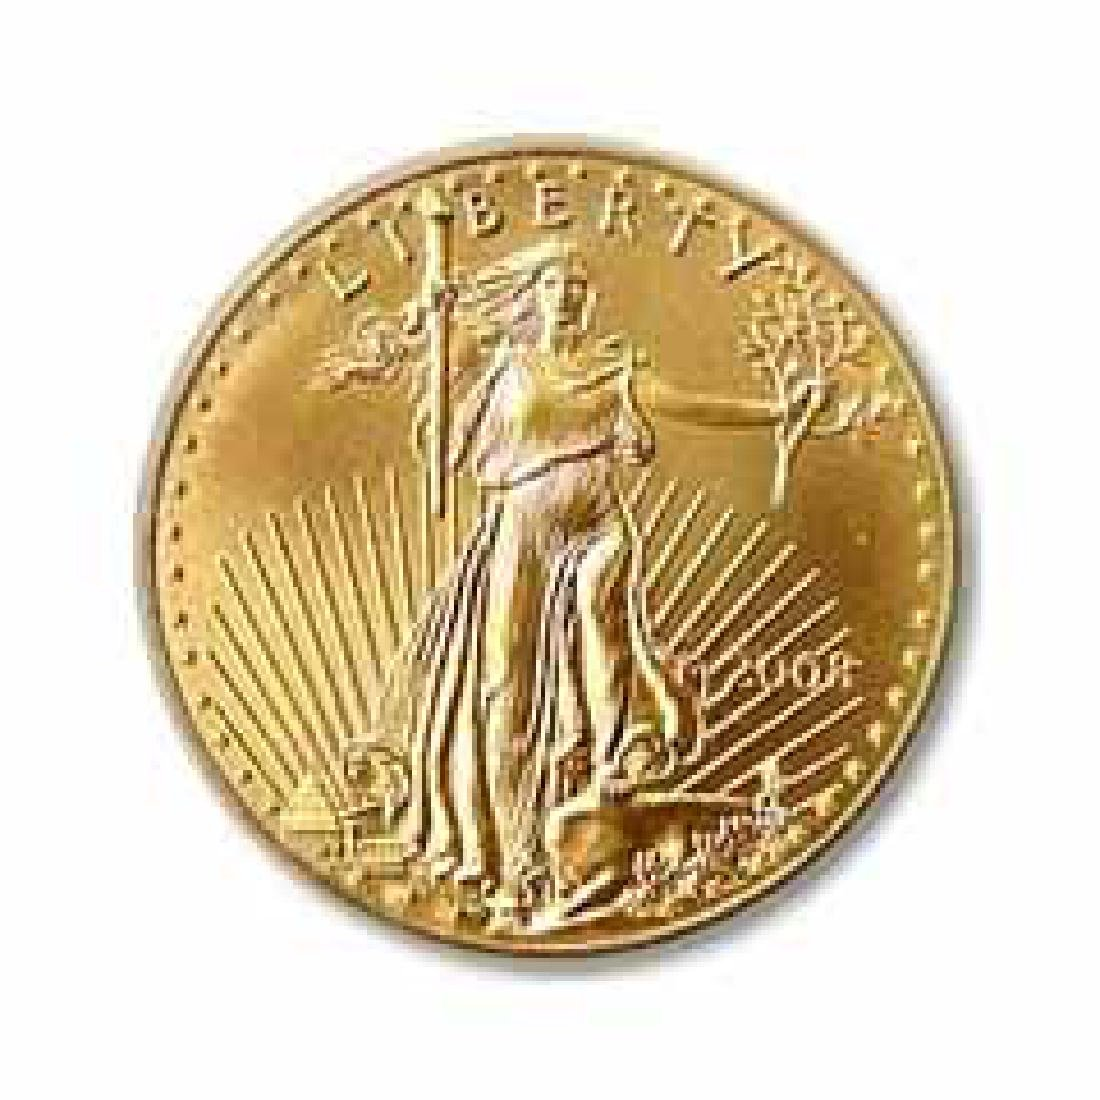 2008 American Gold Eagle 1/2 oz Uncirculated